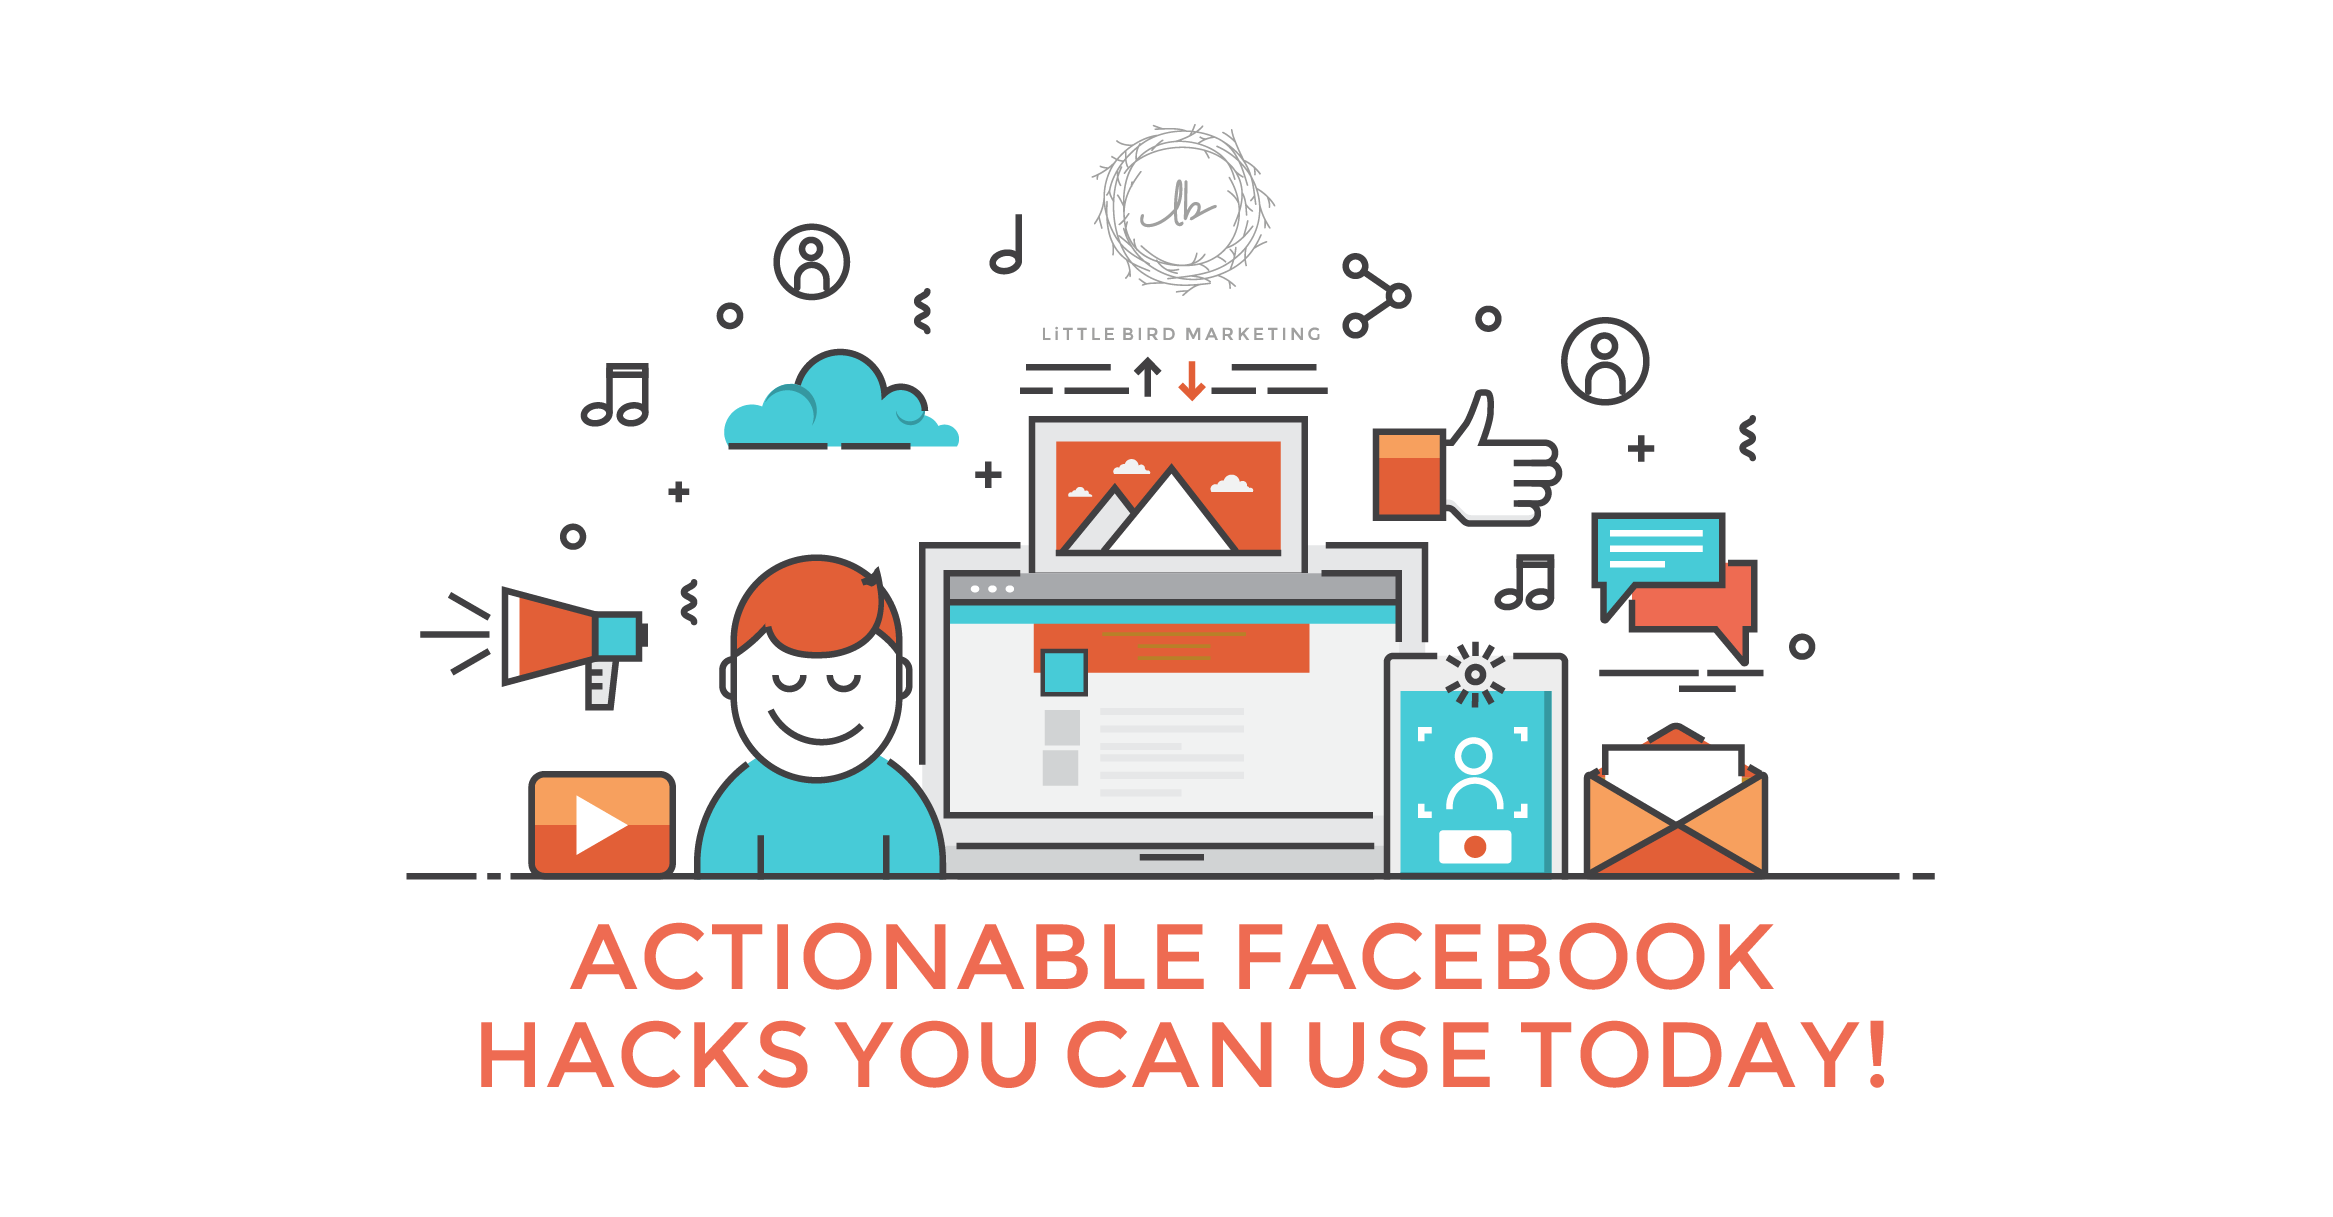 Actionable Facebook hacks you can use today! Get engagement on the largest social platform available!